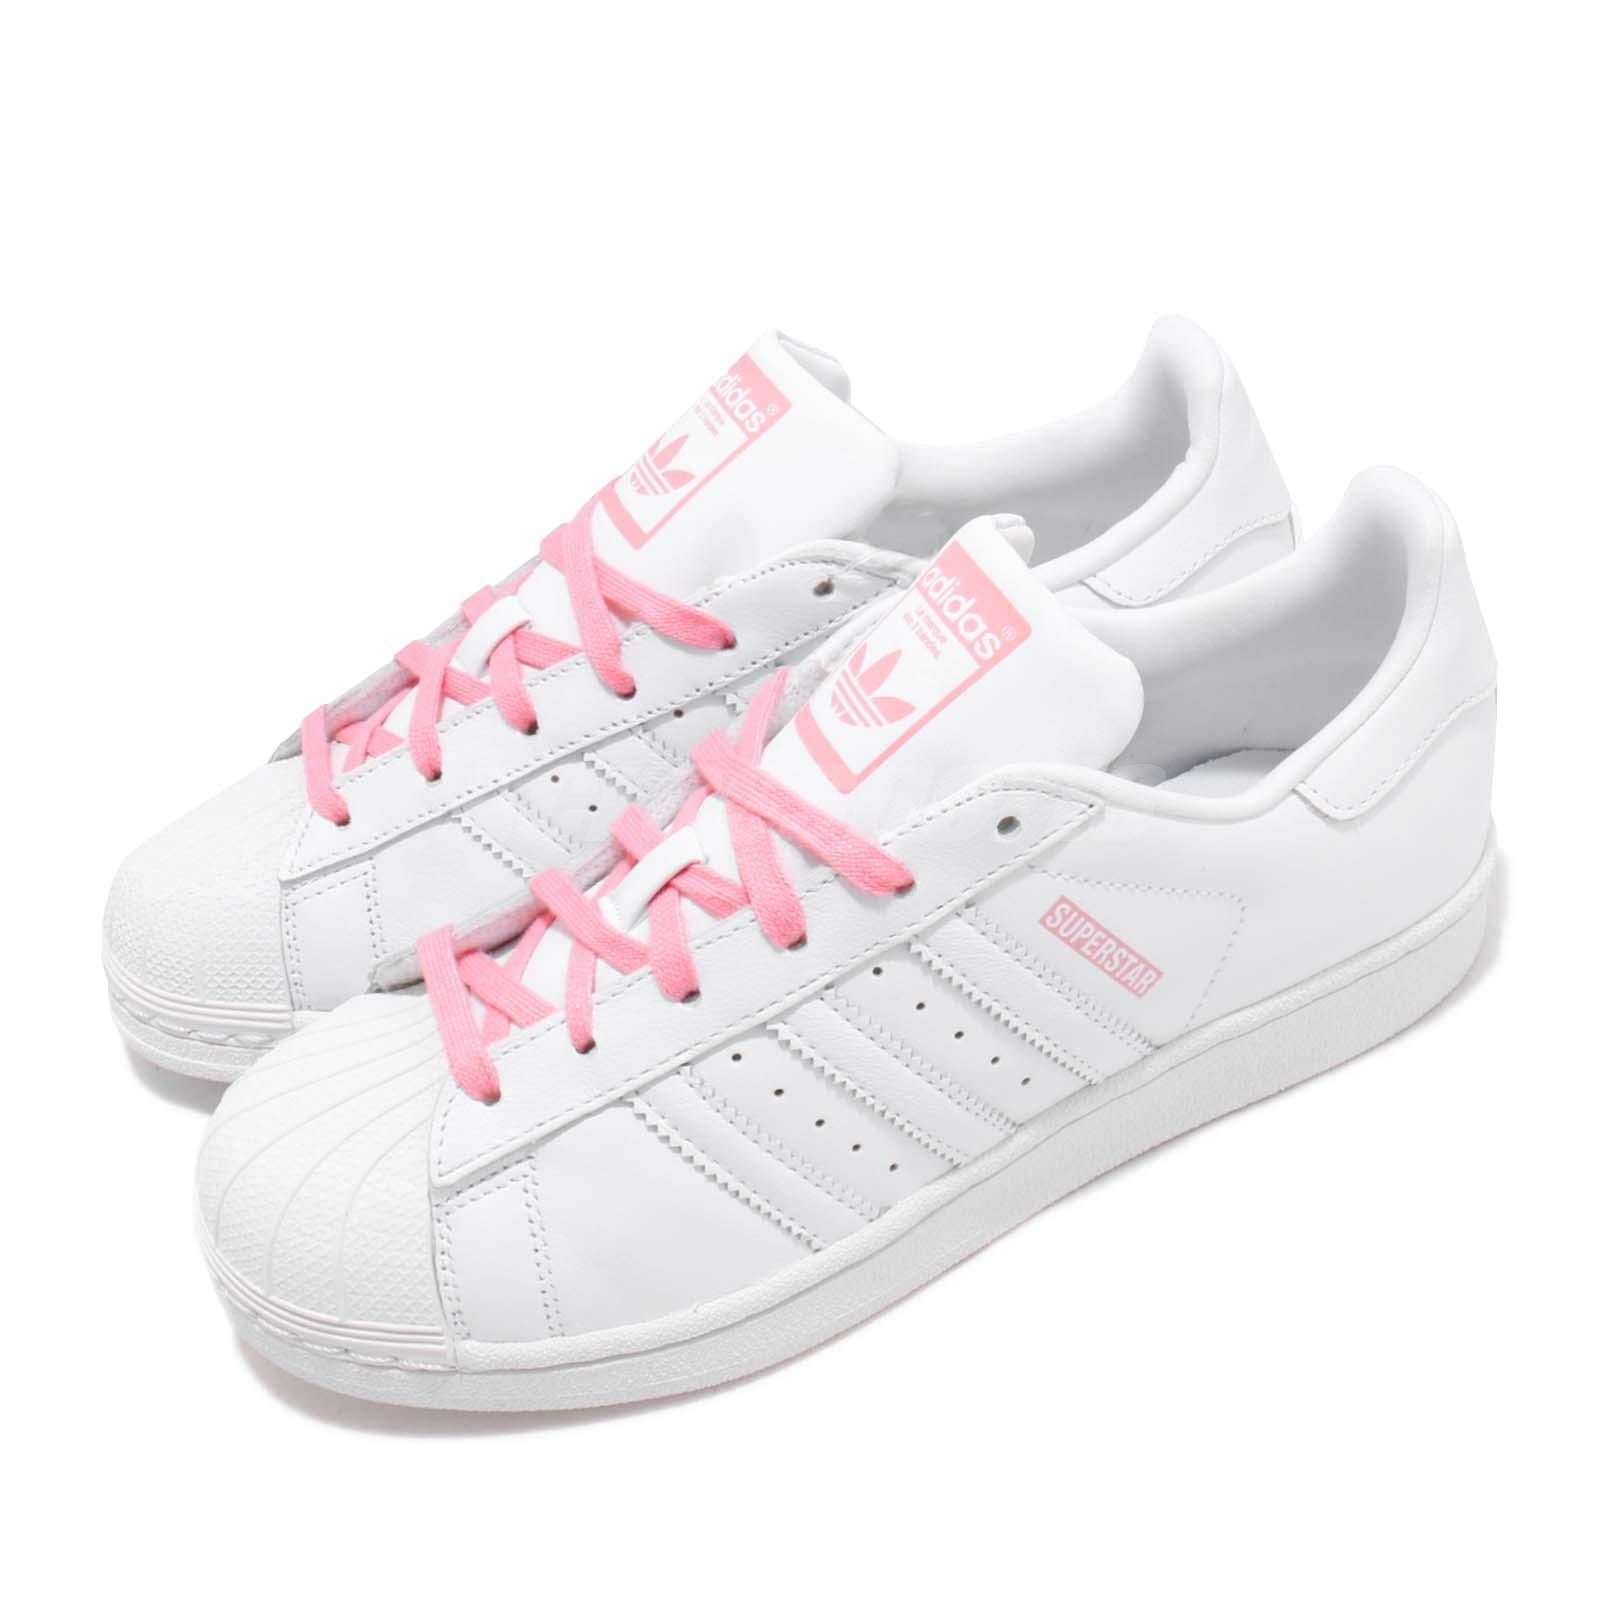 Details about Shoes adidas Superstar J White Kids